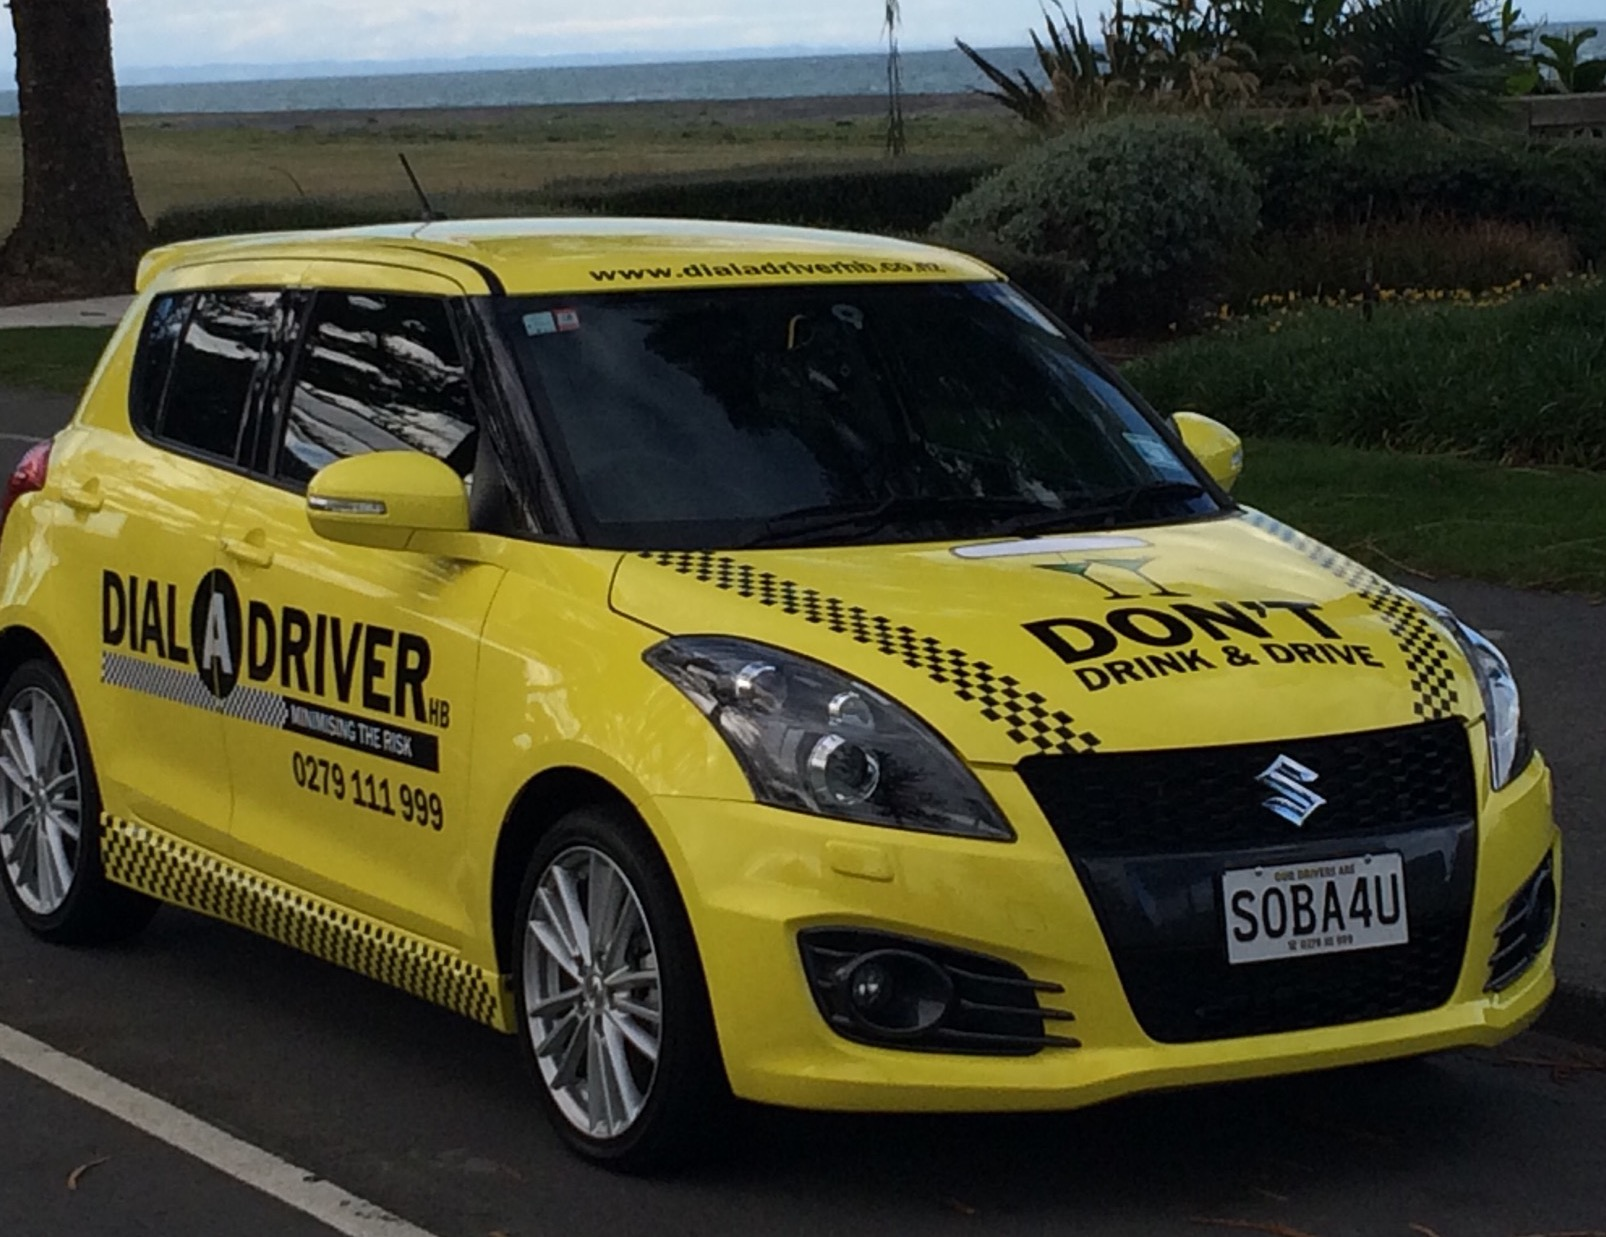 Corporate A 2 B & Dial A Driver Hawkes Bay